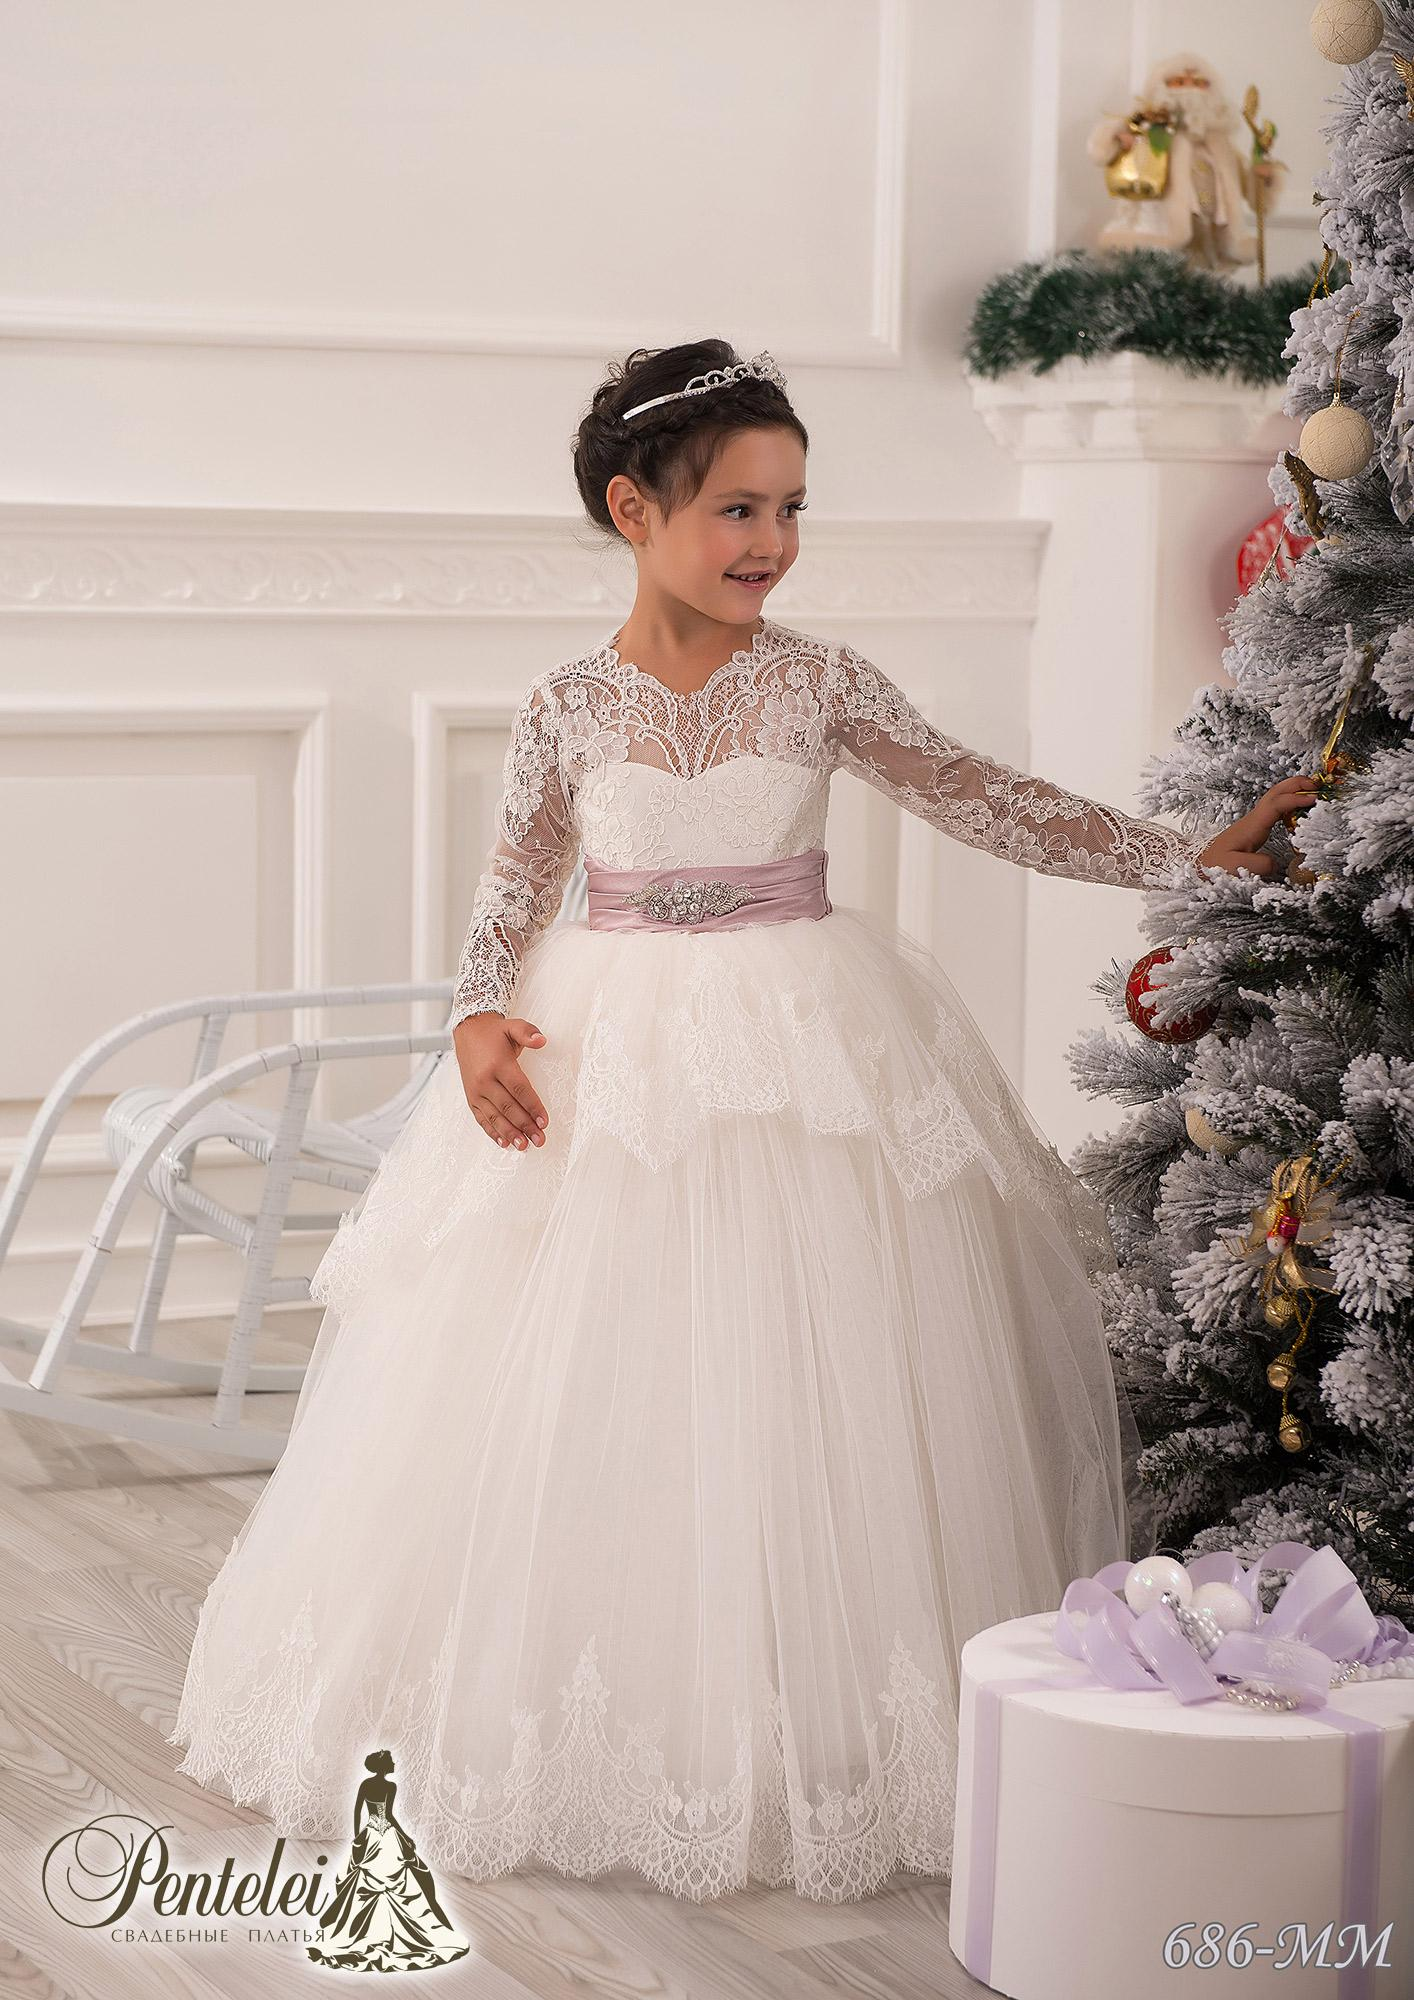 Jewel long sleeves sash lace ball gown baby girl birthday party jewel long sleeves sash lace ball gown baby girl birthday party christmas princess dresses children girl party dresses flower girl dresses wedding girls ombrellifo Image collections